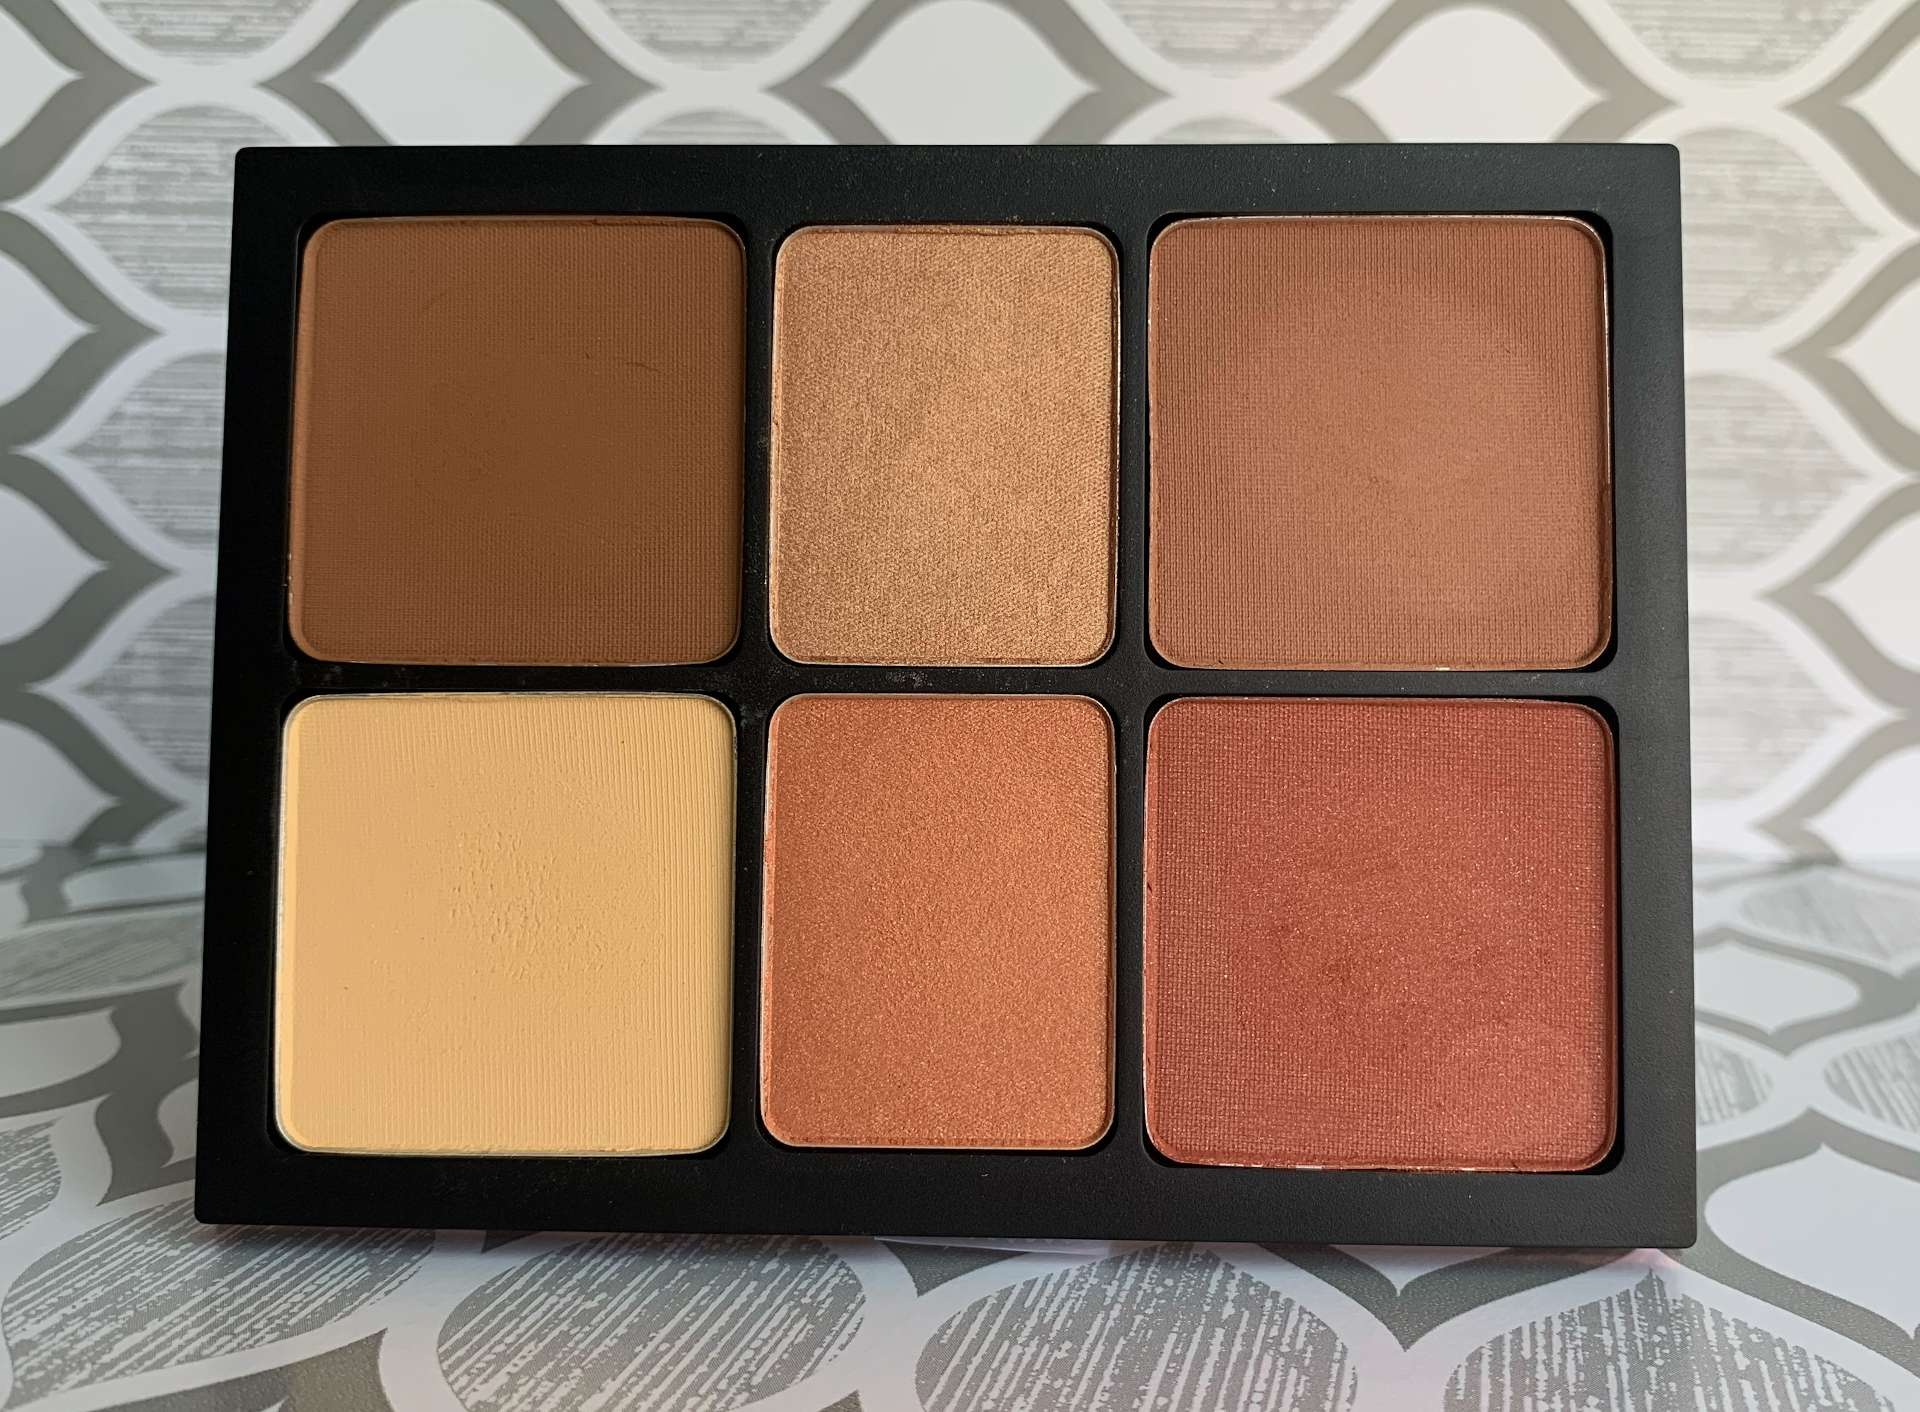 Smashbox Cali Contour Medium-Dark Palette swatches dark skin